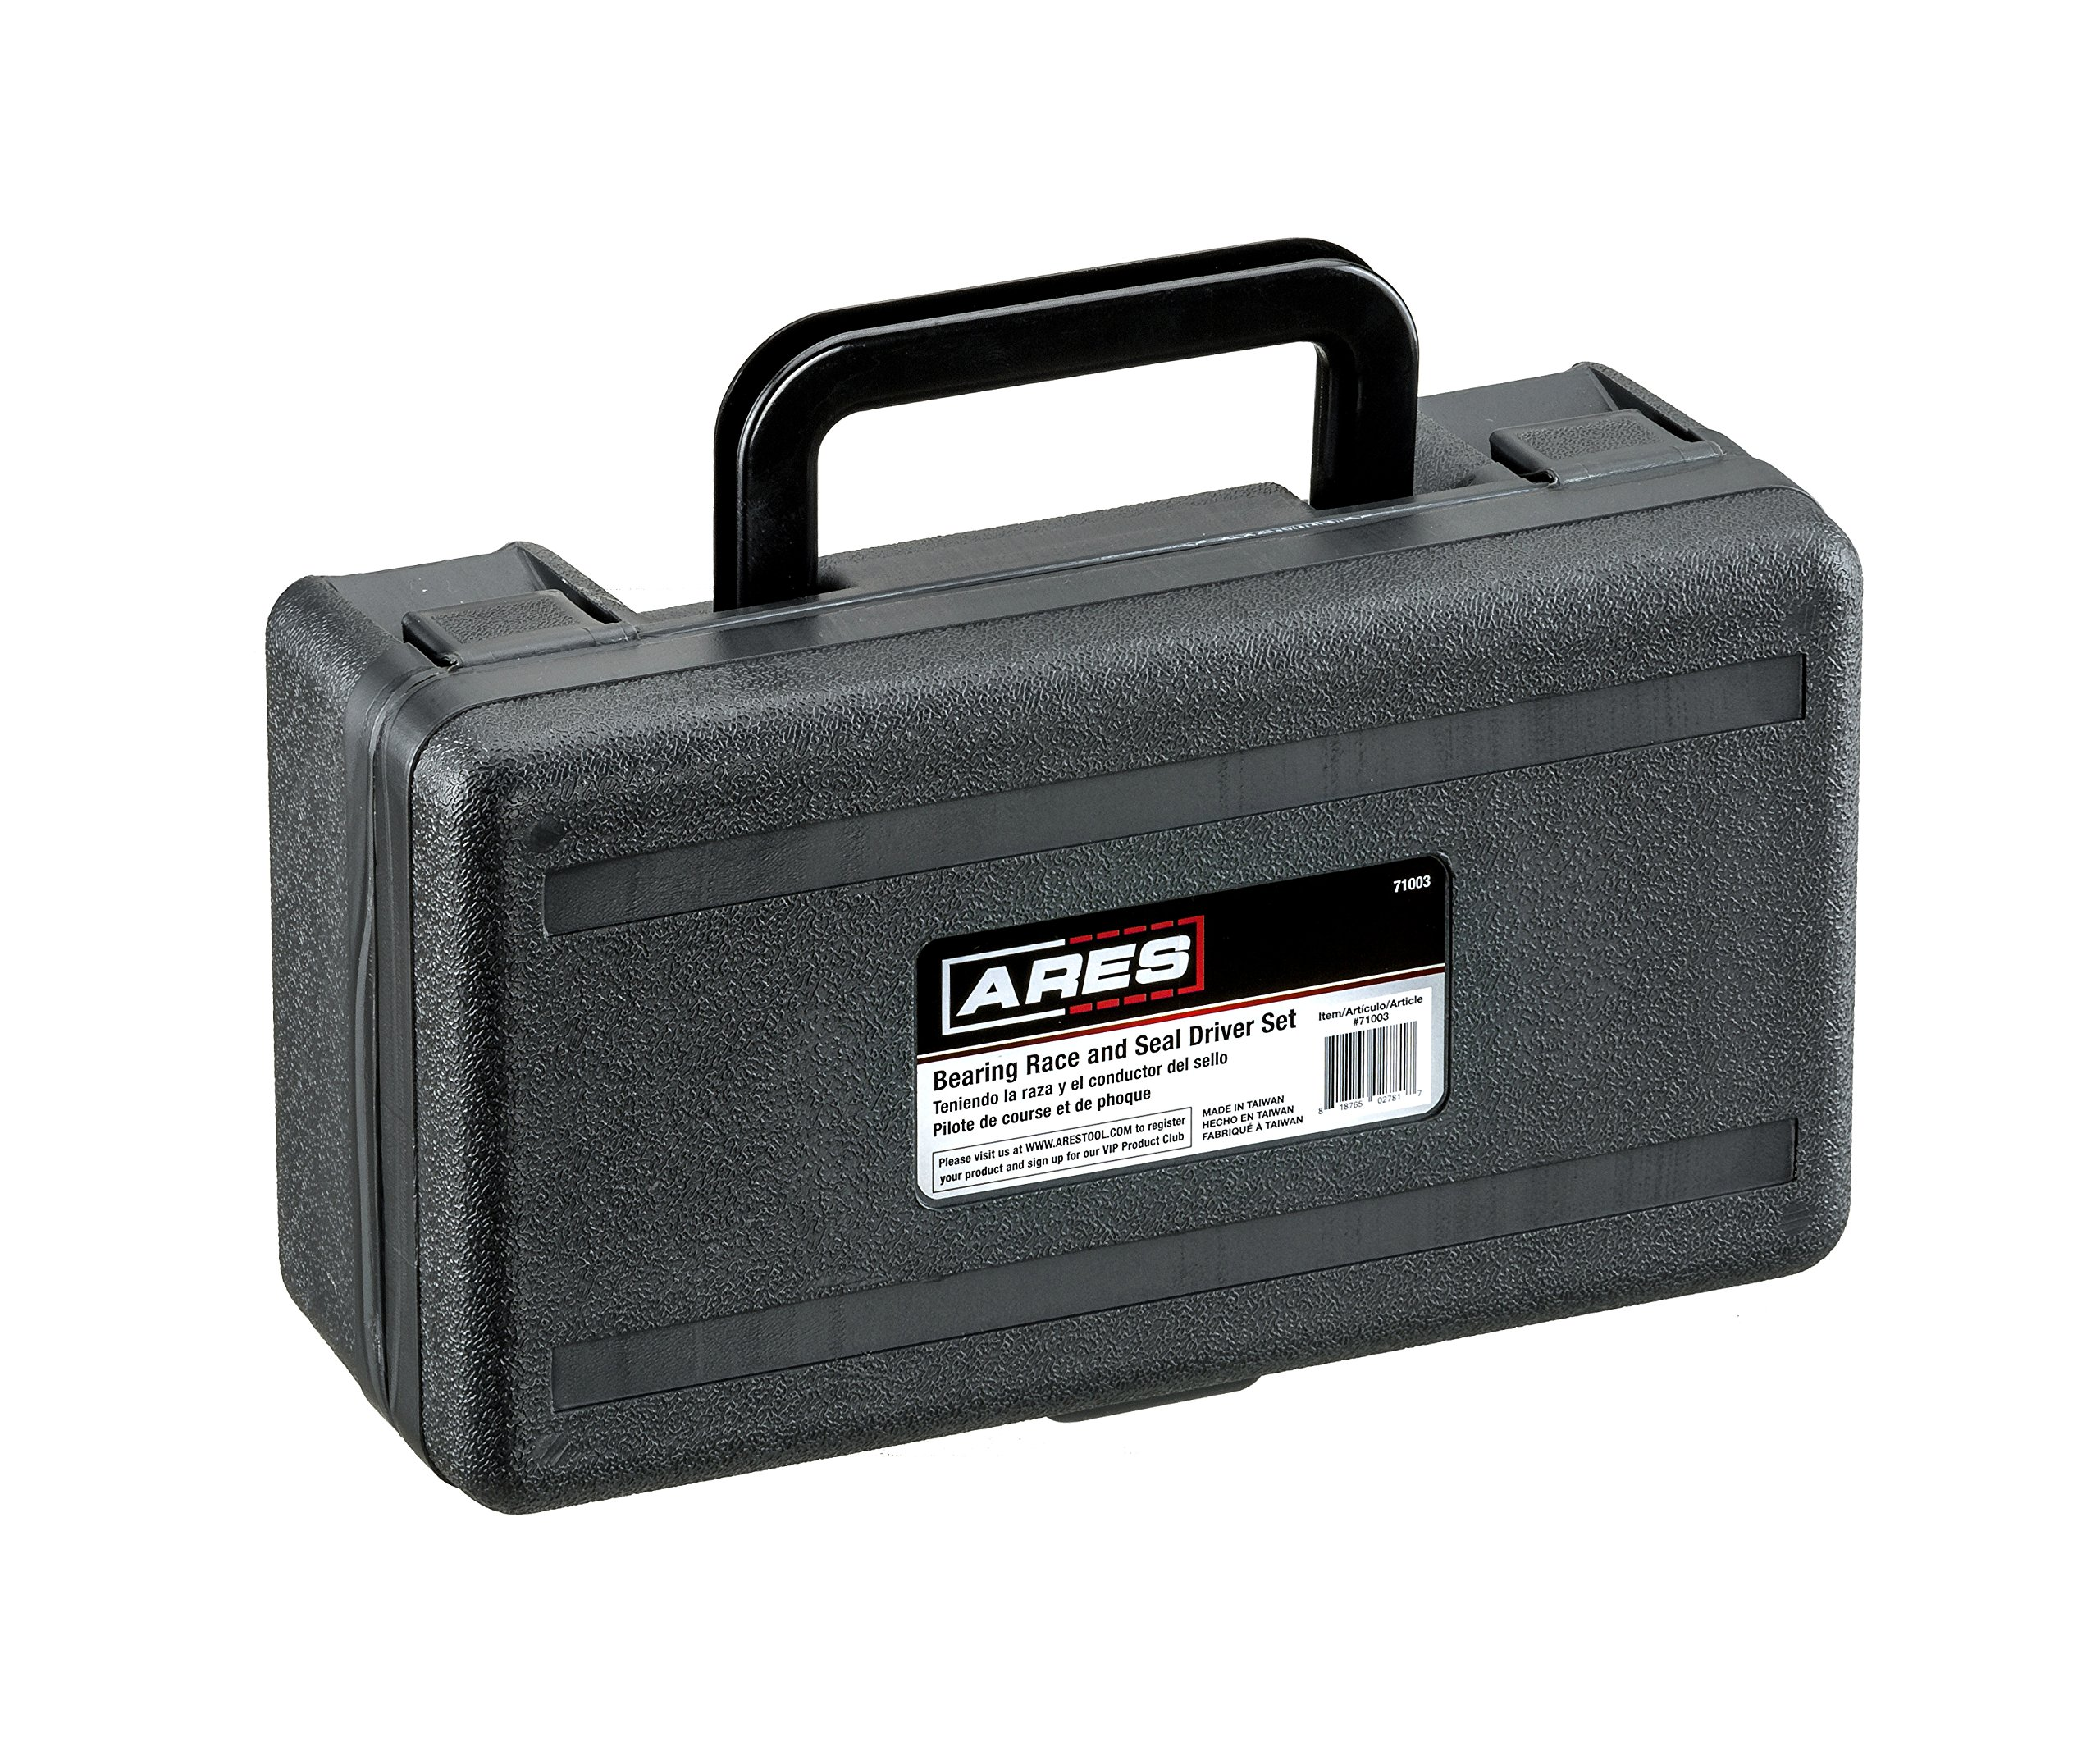 ARES 71003 | Bearing Race and Seal Driver Set | Universal Kit Allows for Easy Race and Seal Installation Storage Case Included by ARES (Image #6)